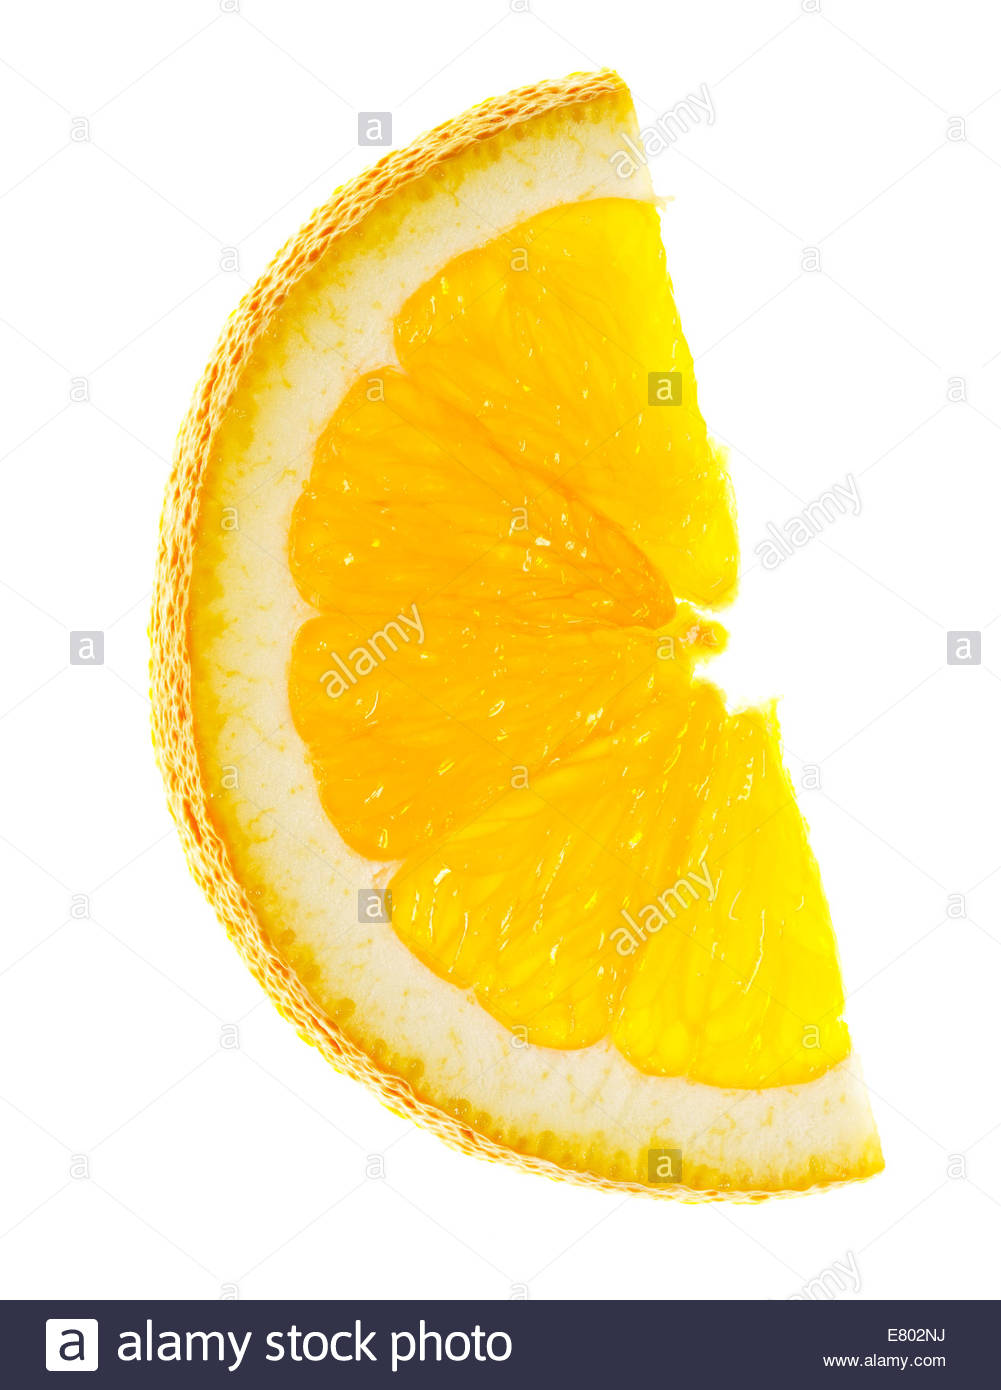 Slices of fresh shiny orange or tangerine over white background. - Stock Image